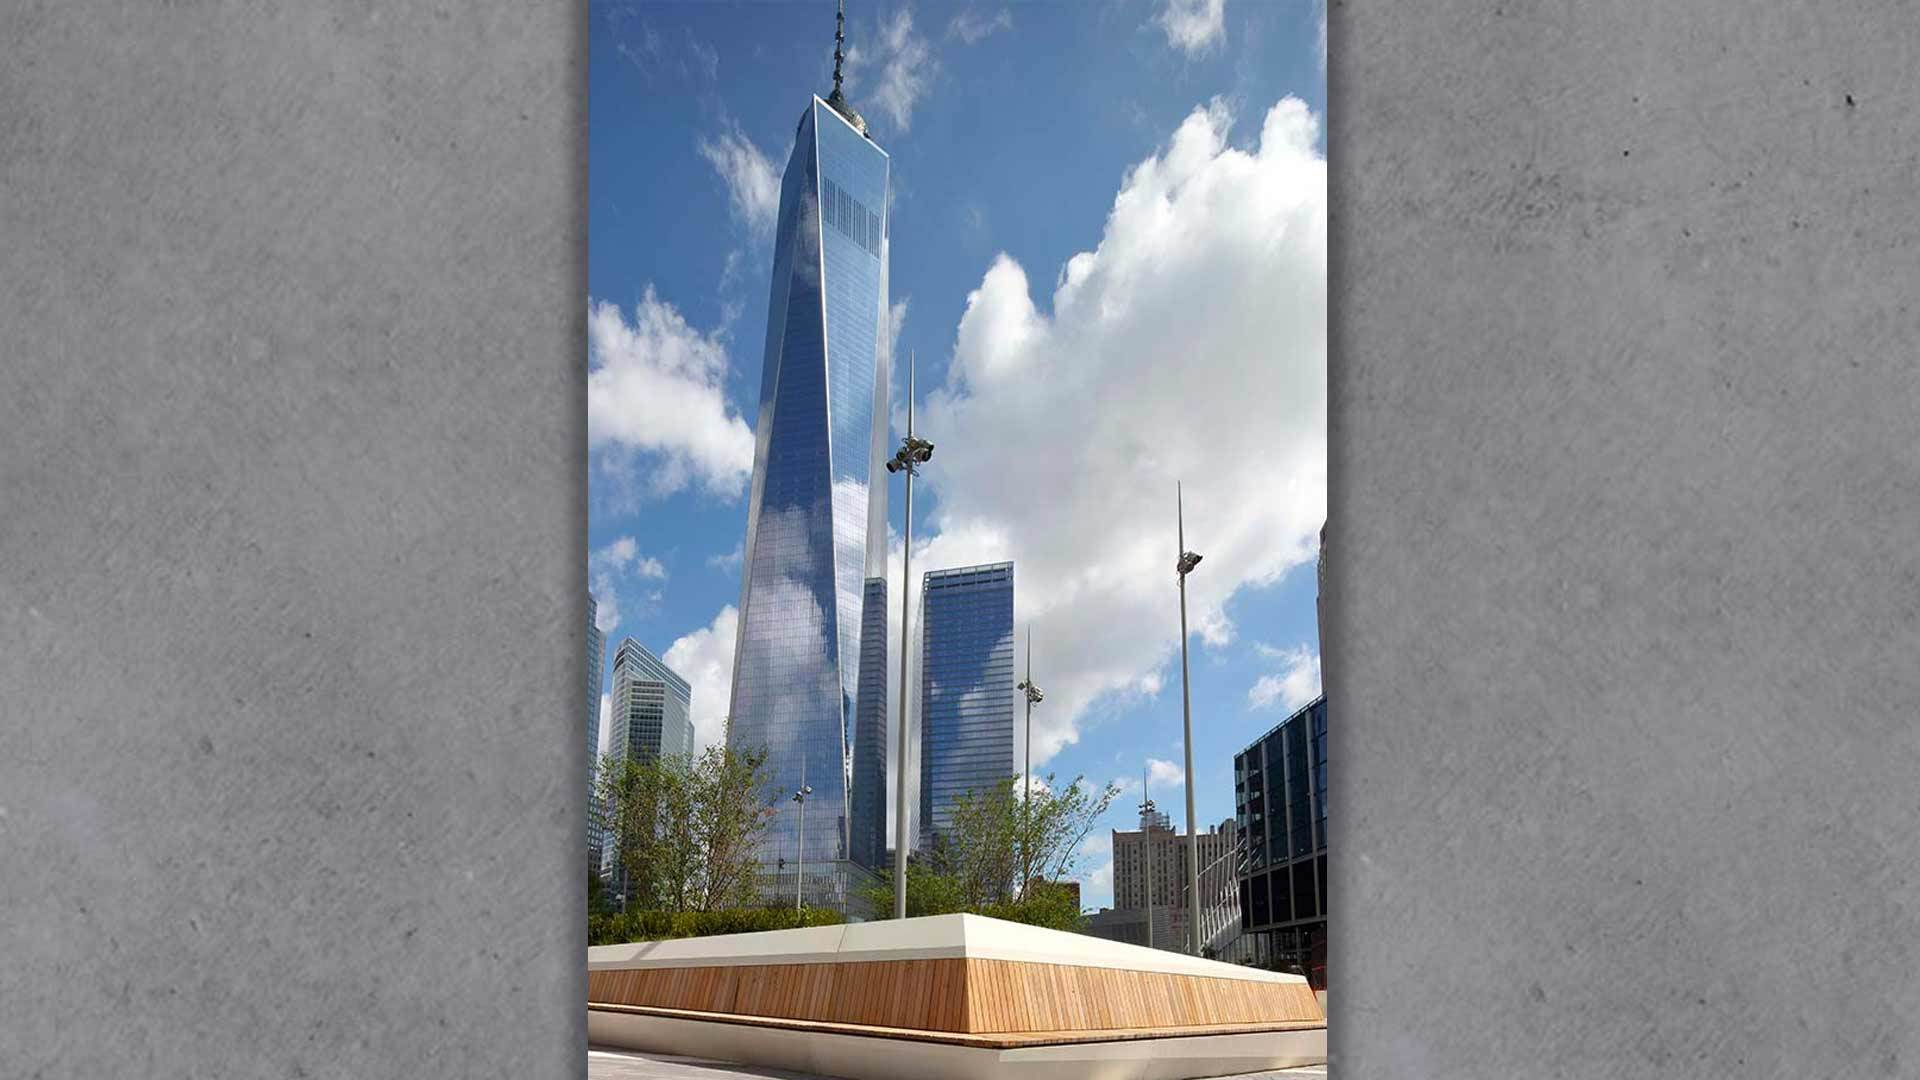 Architectural & security concrete: New World Trade Center